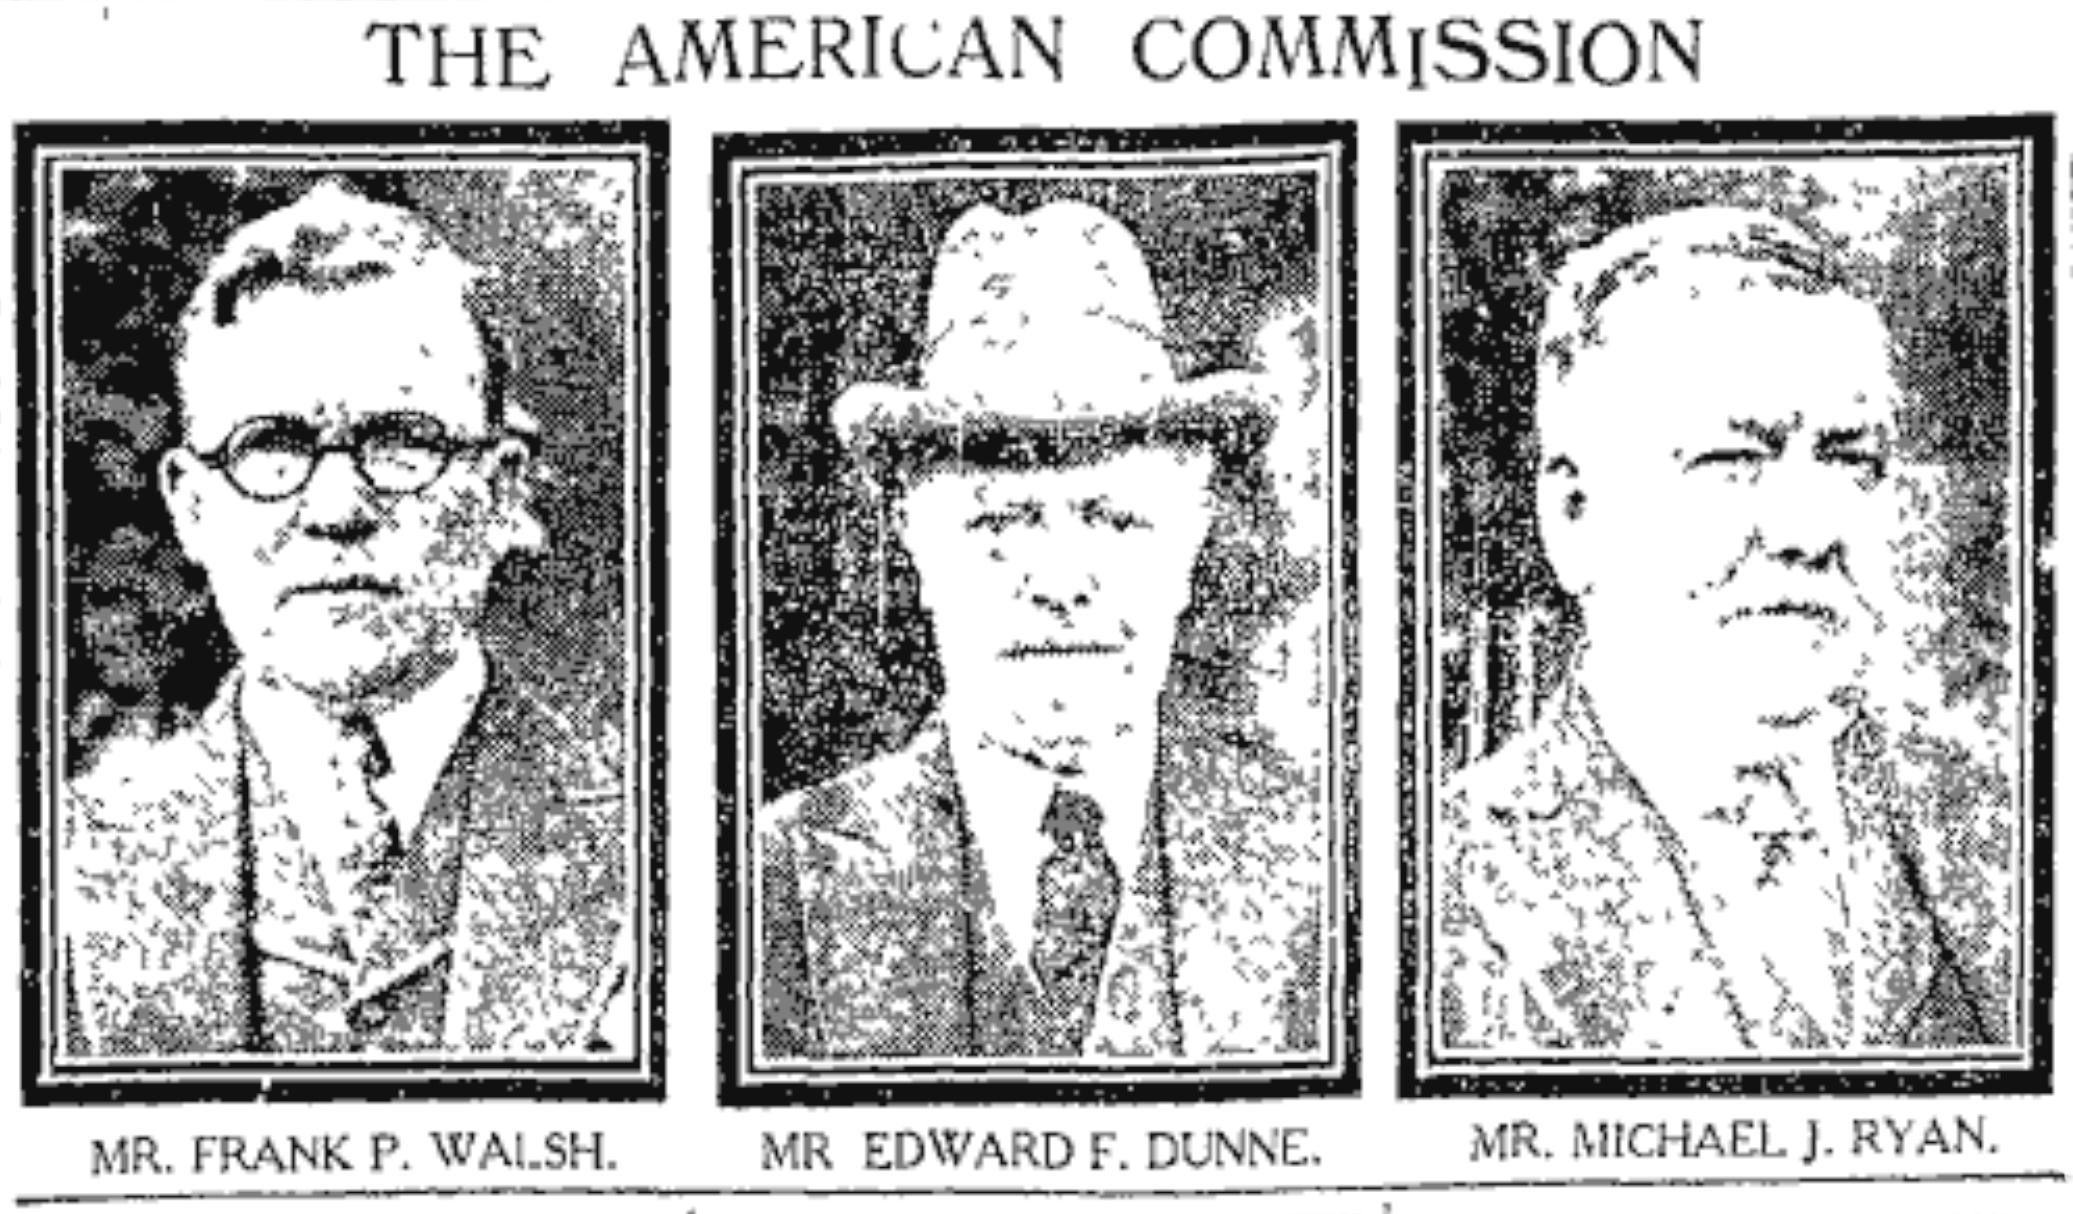 Frank P. Walsh, Edward F. Dunne & Michael J. Ryan, the three men who travelled to Ireland in May 1919 under the guise of The American Commission on Irish Independence